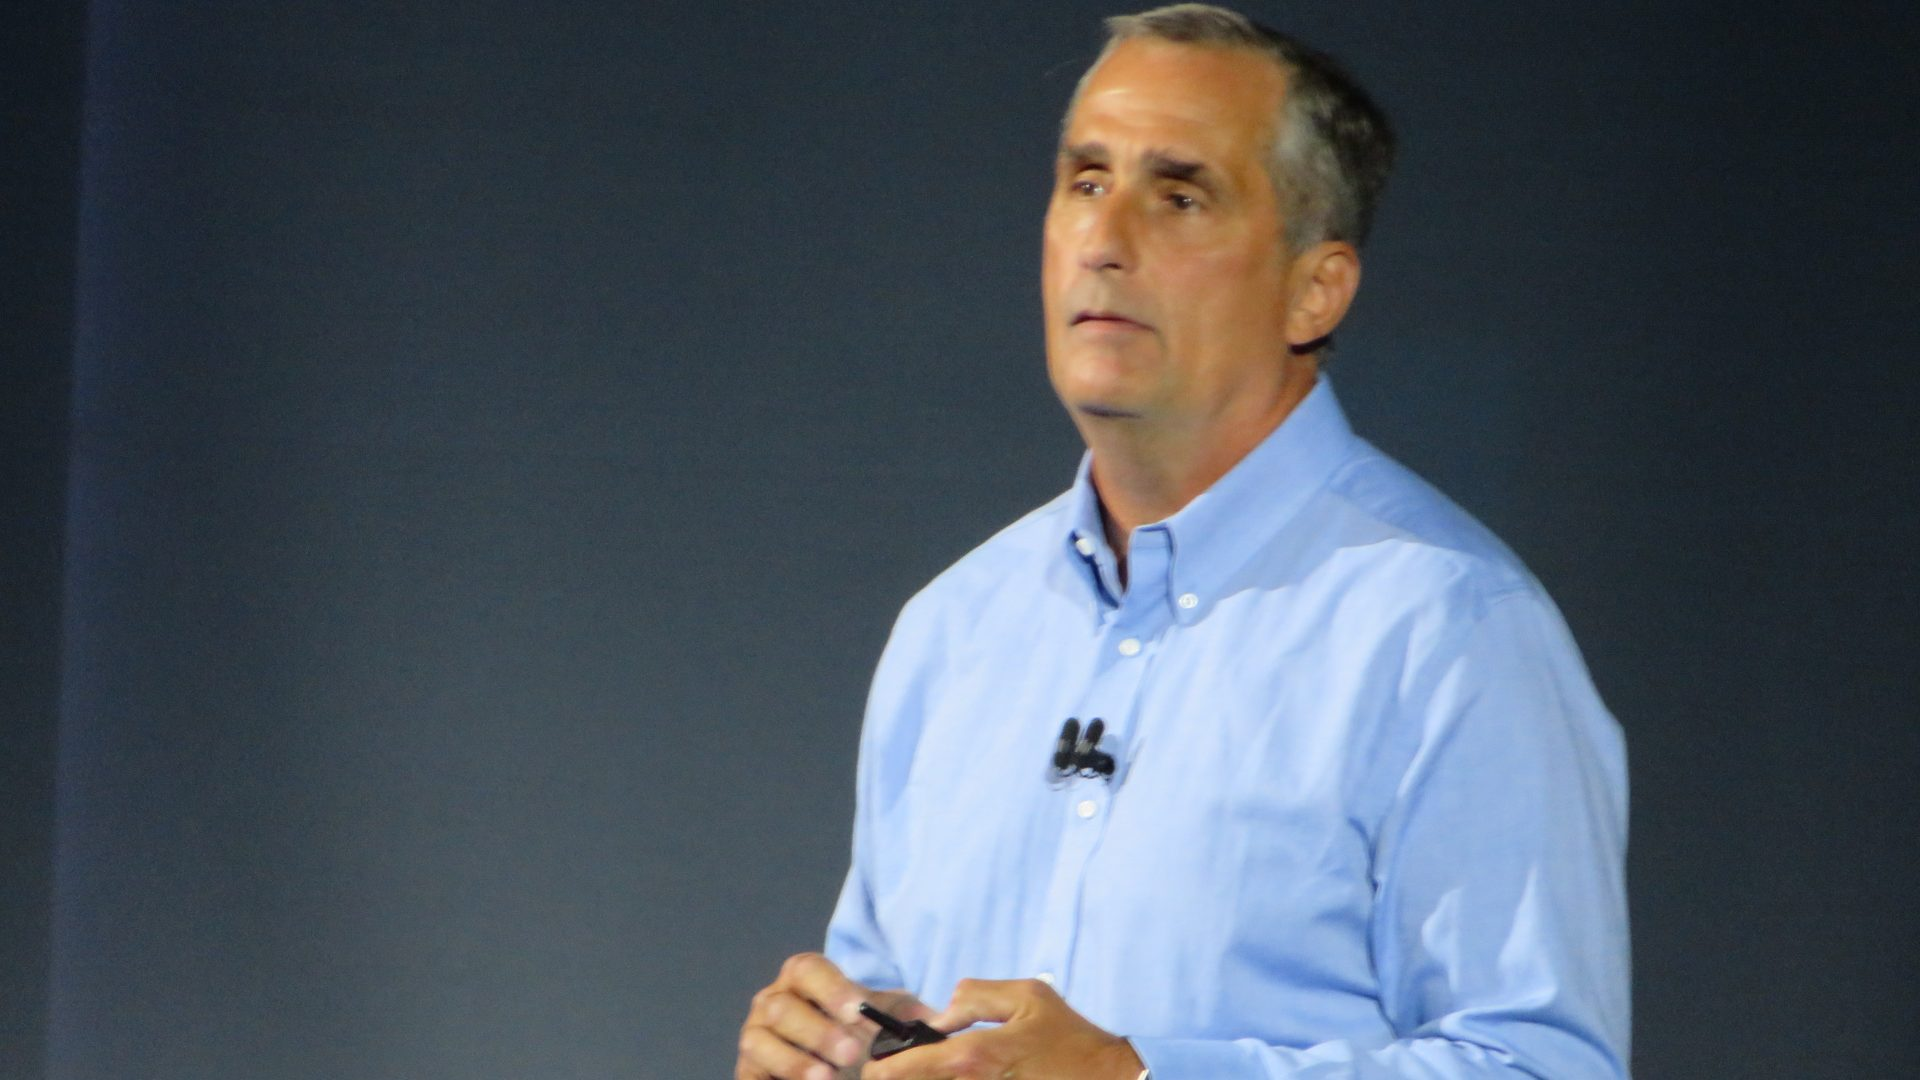 Intel CEO addresses chip concerns at CES